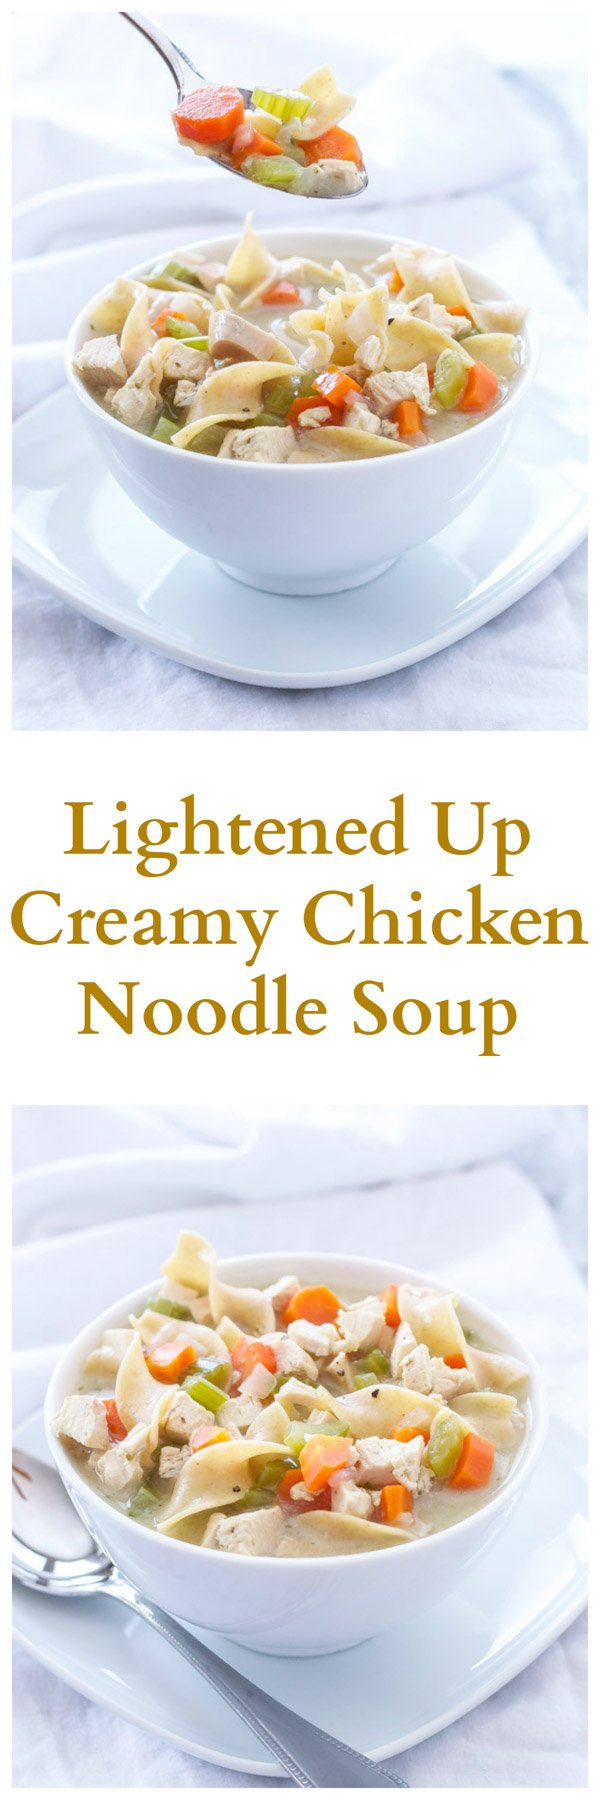 Lightened Up Creamy Chicken Noodle Soup | My favorite healthy, creamy, and delicious bowl of chicken noodle soup! | @reciperunner